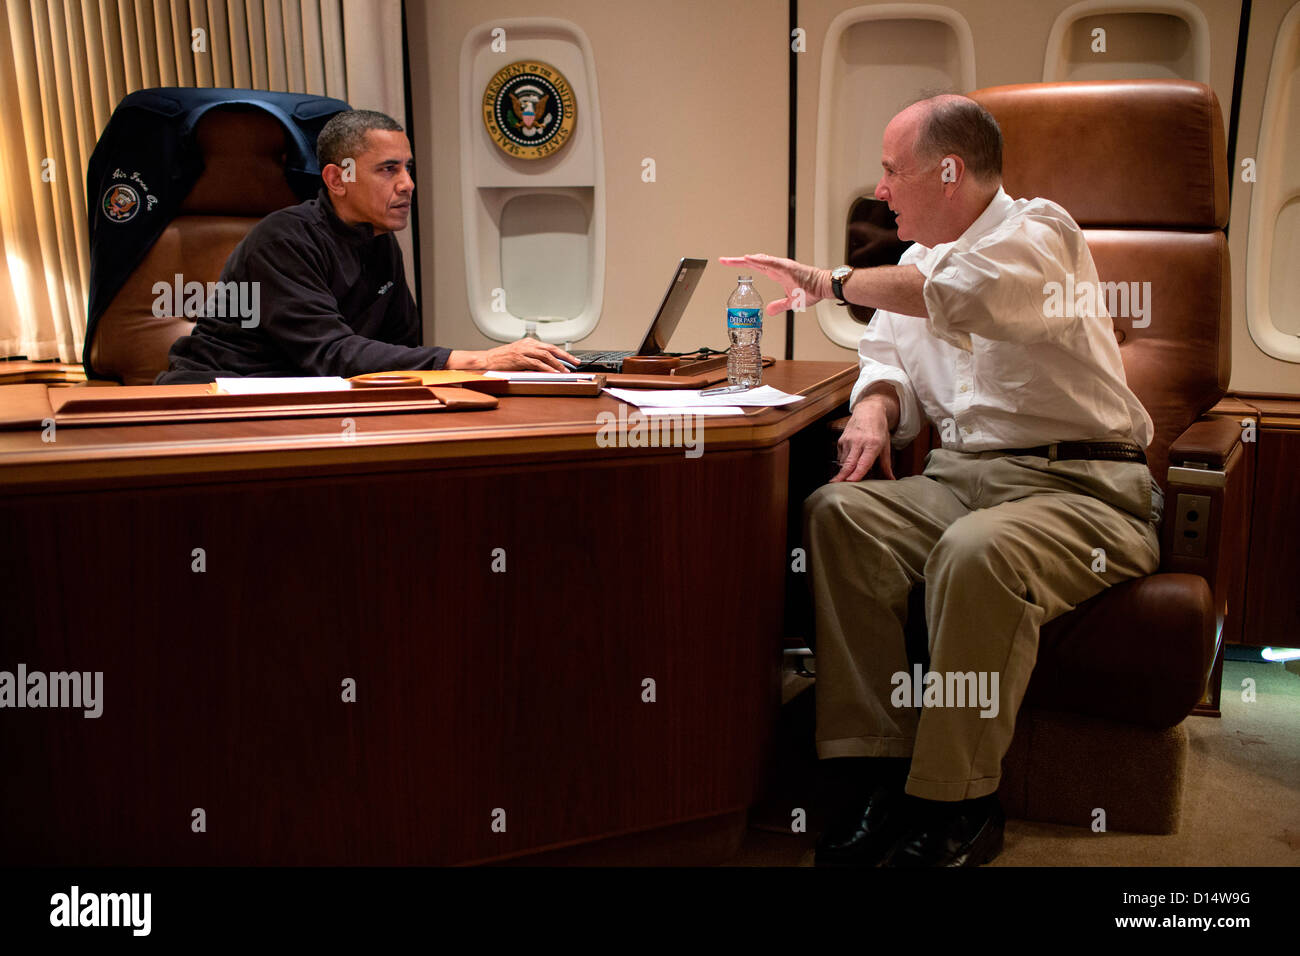 US President Barack Obama talks with National Security Advisor Tom Donilon before a phone call with President Mohammed - Stock Image